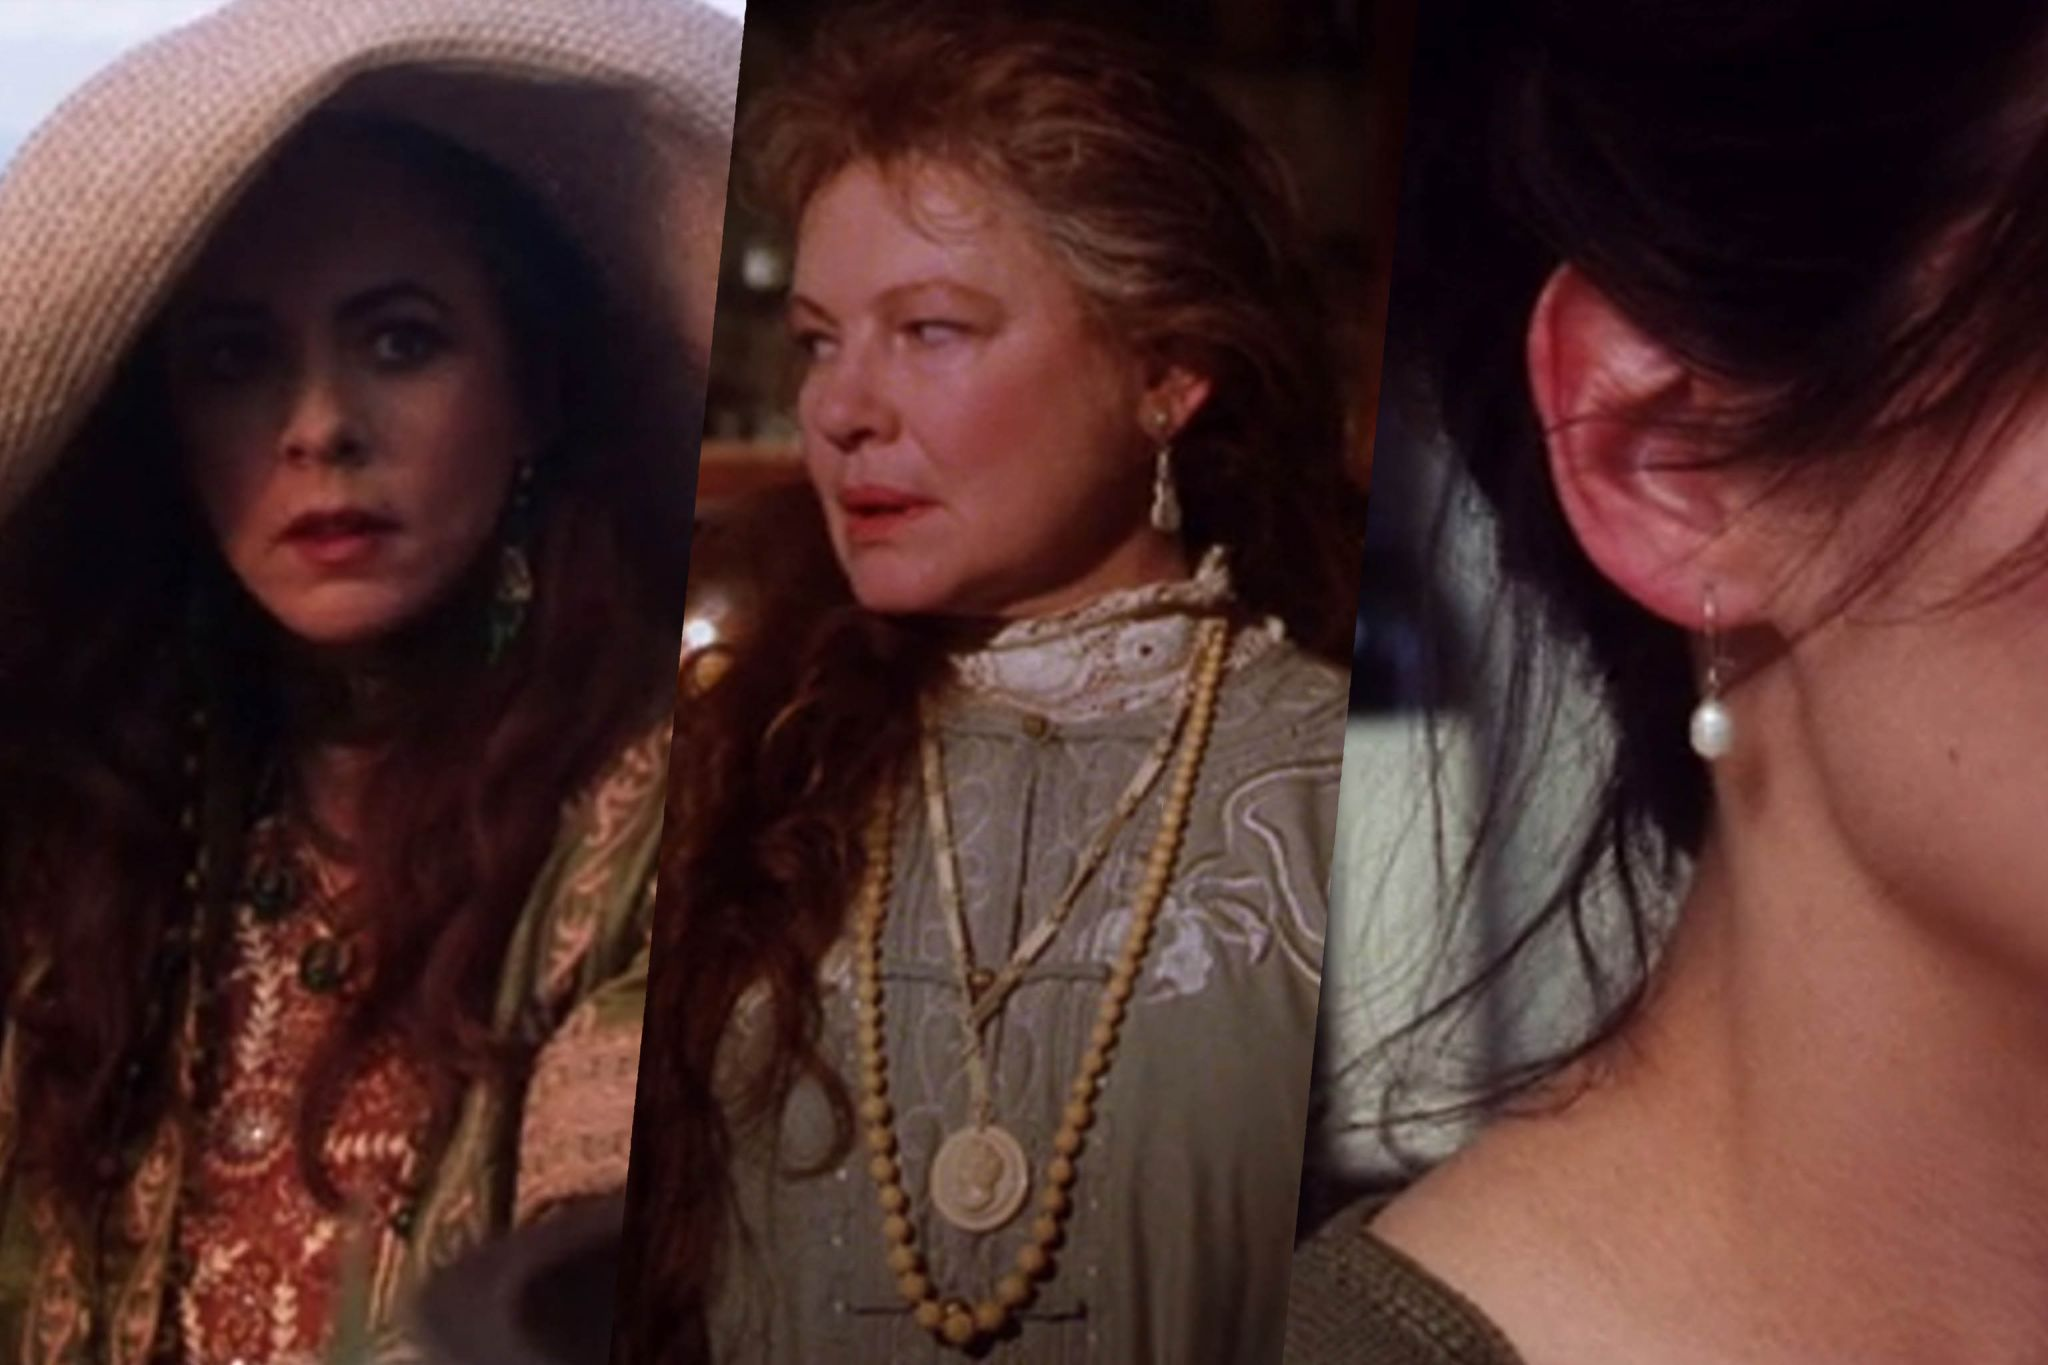 As seen on the Owens' women from Practical magic